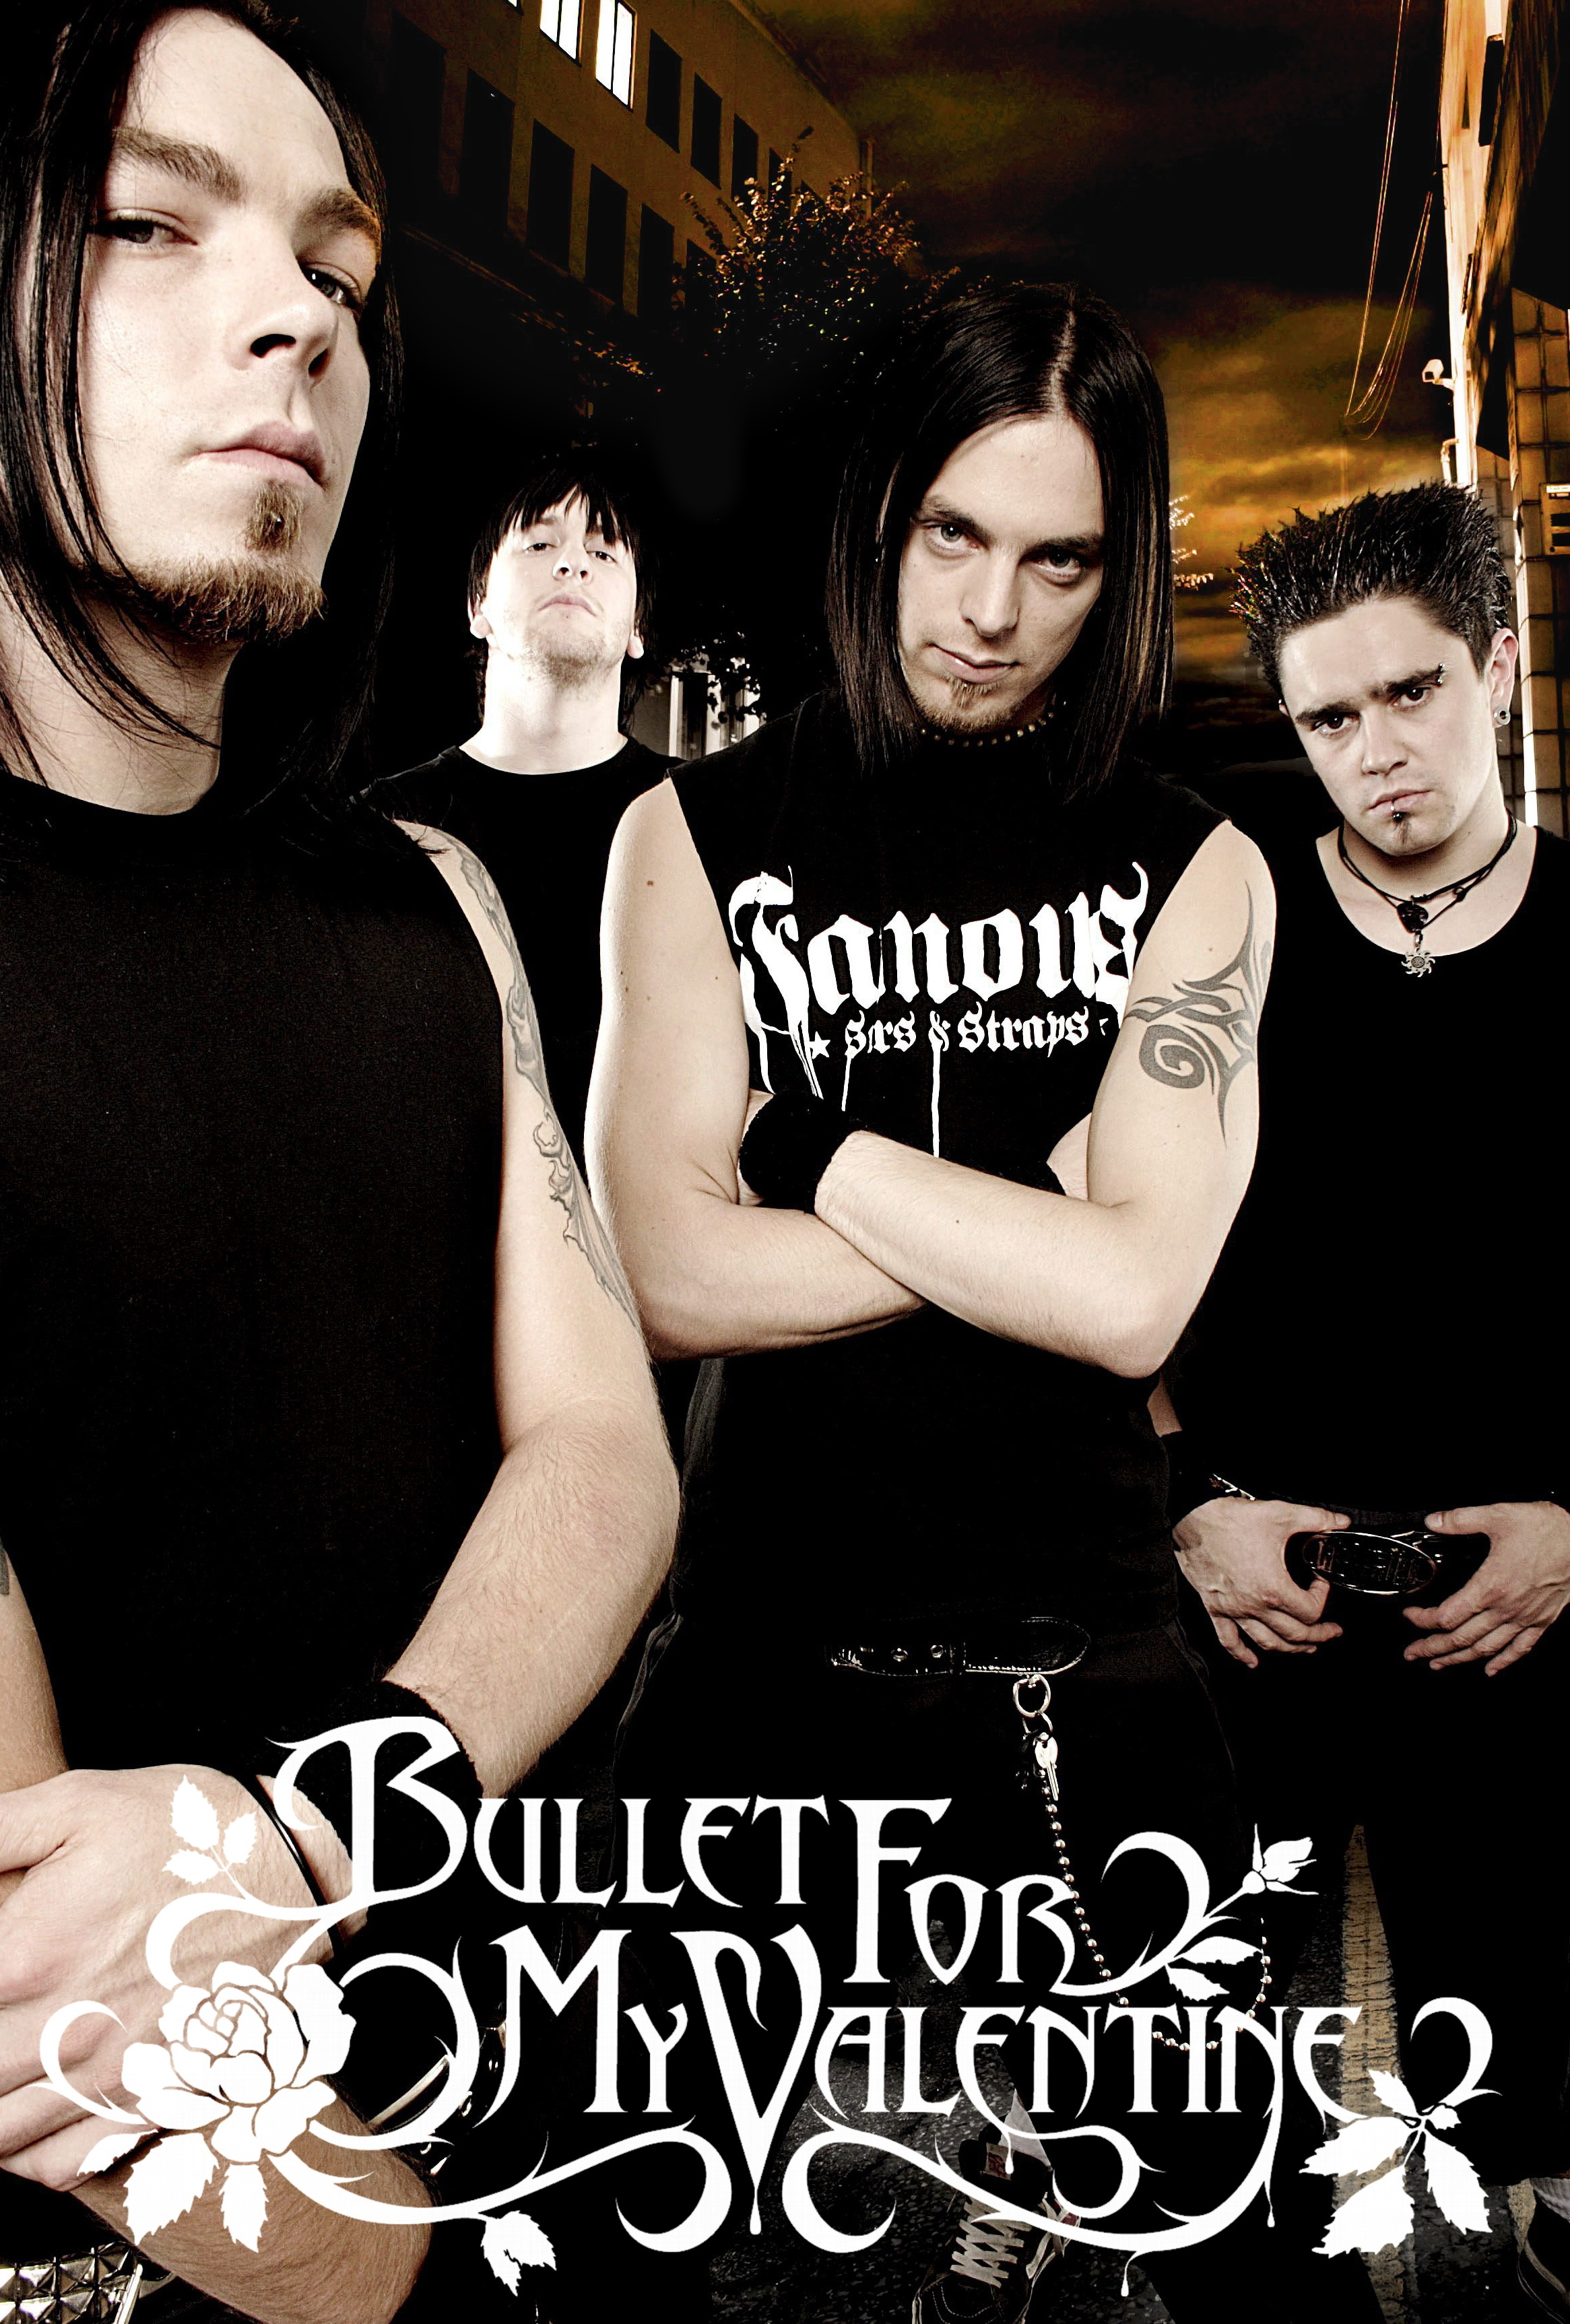 ... Bullet For My Valentine Wall By Veeboy2